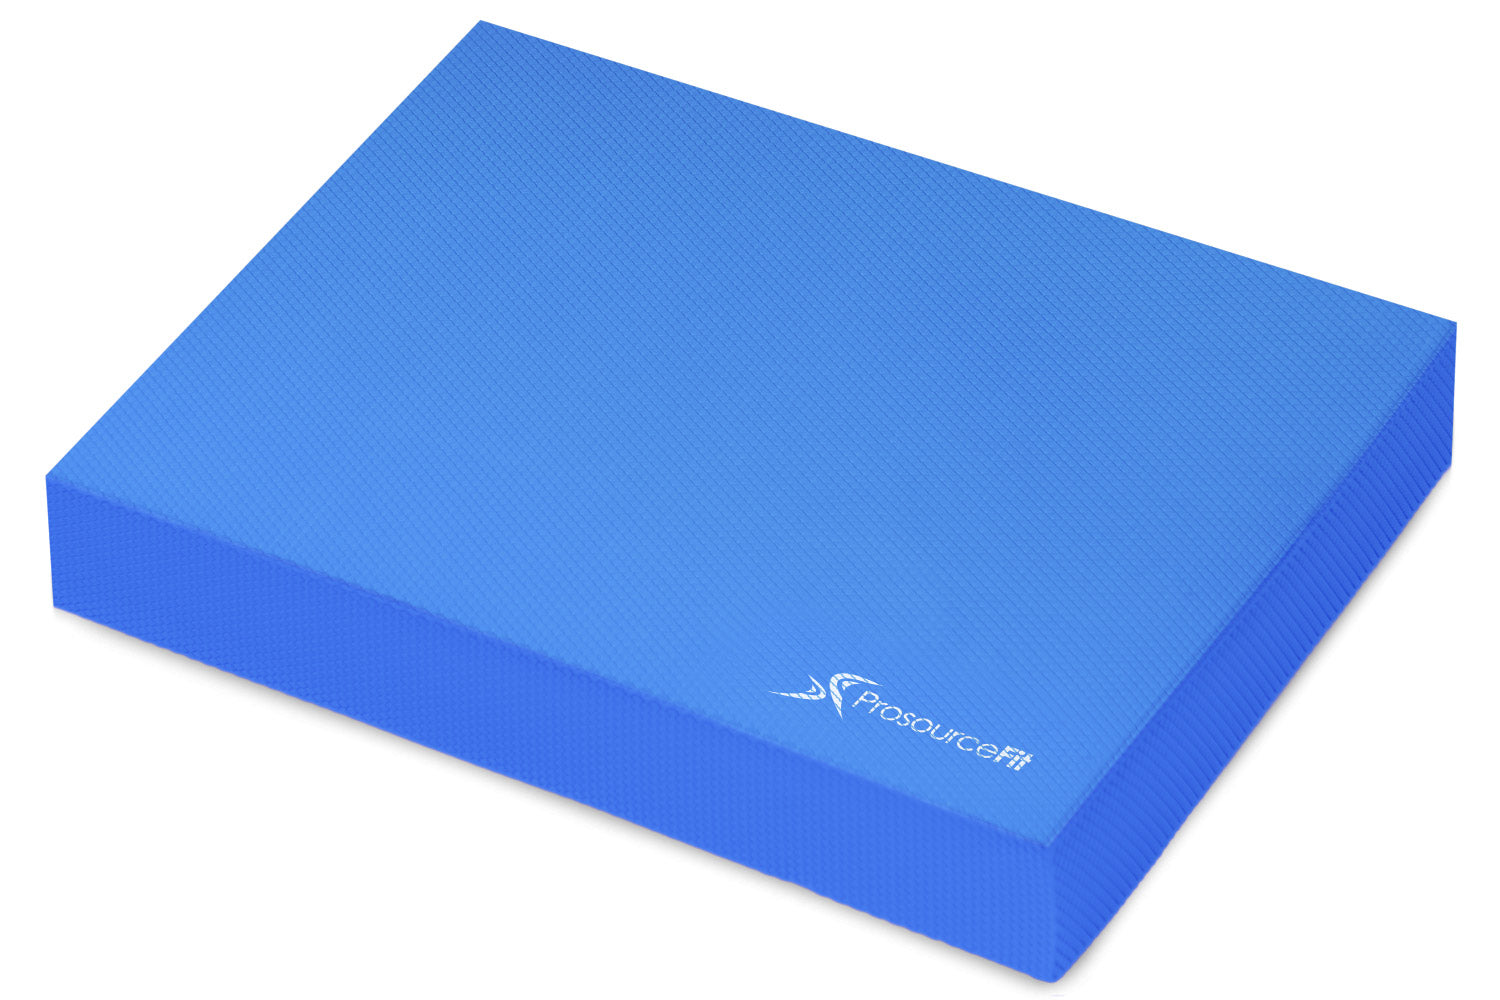 Blue Exercise Balance Pad